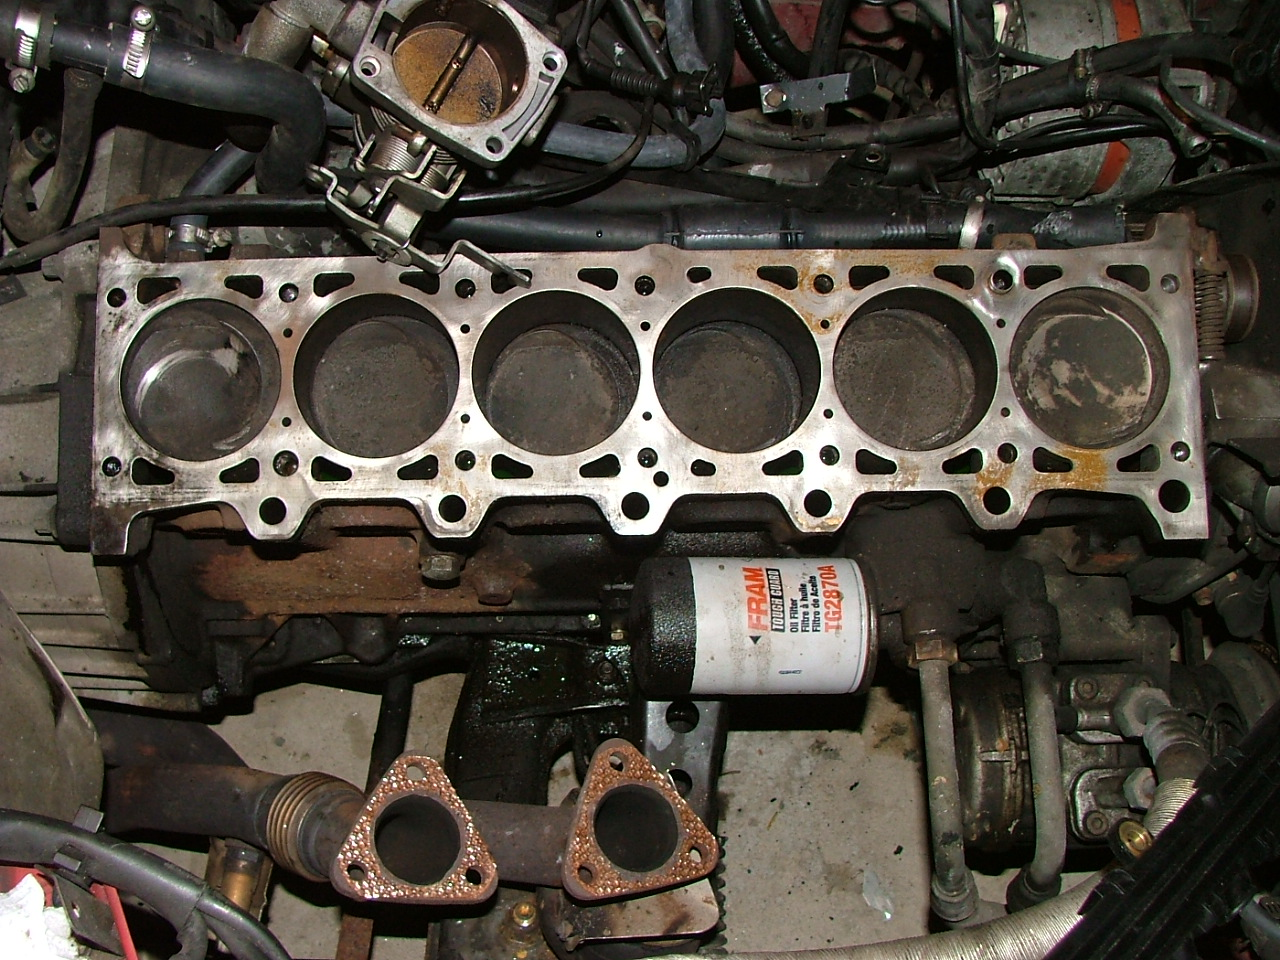 hight resolution of a bmw m20b25 engine with the cylinder head removed showing the pistons in the six cylinders of the engine